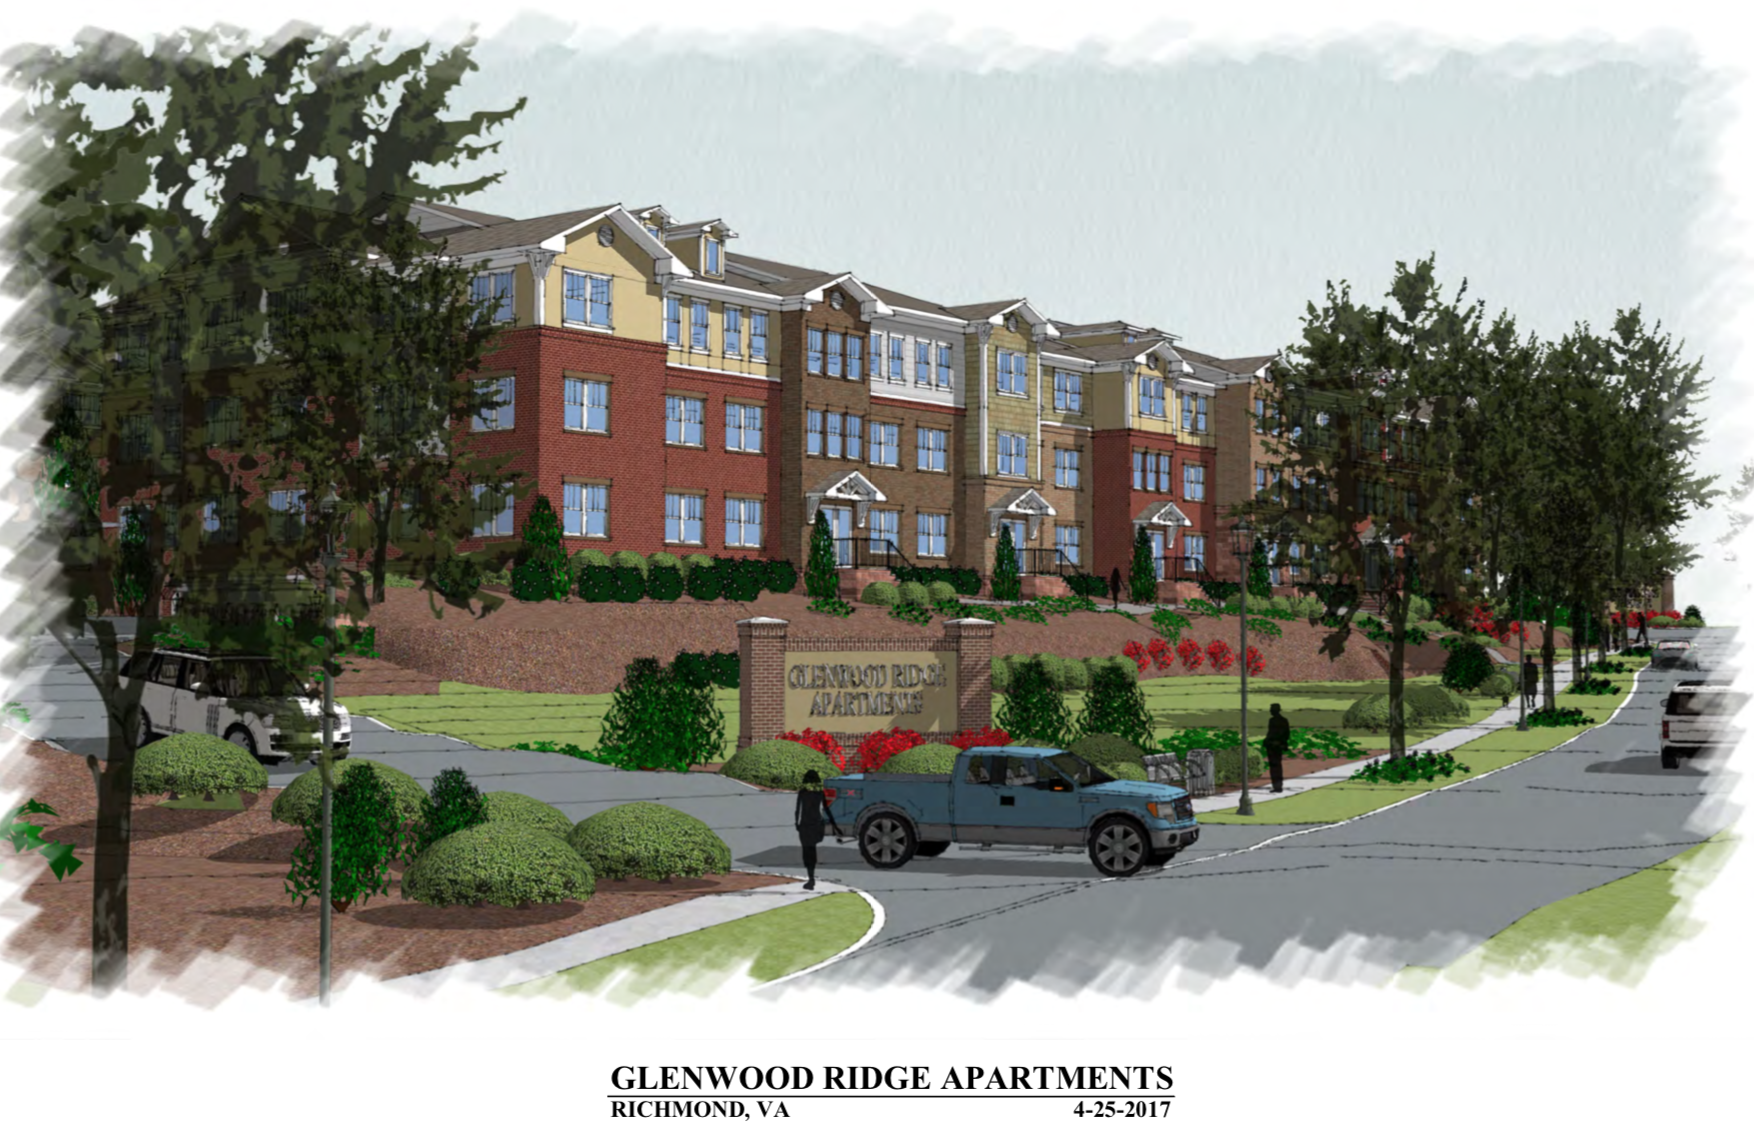 Petition Circulating To Stall Proposed Glenwood Ridge Apartments